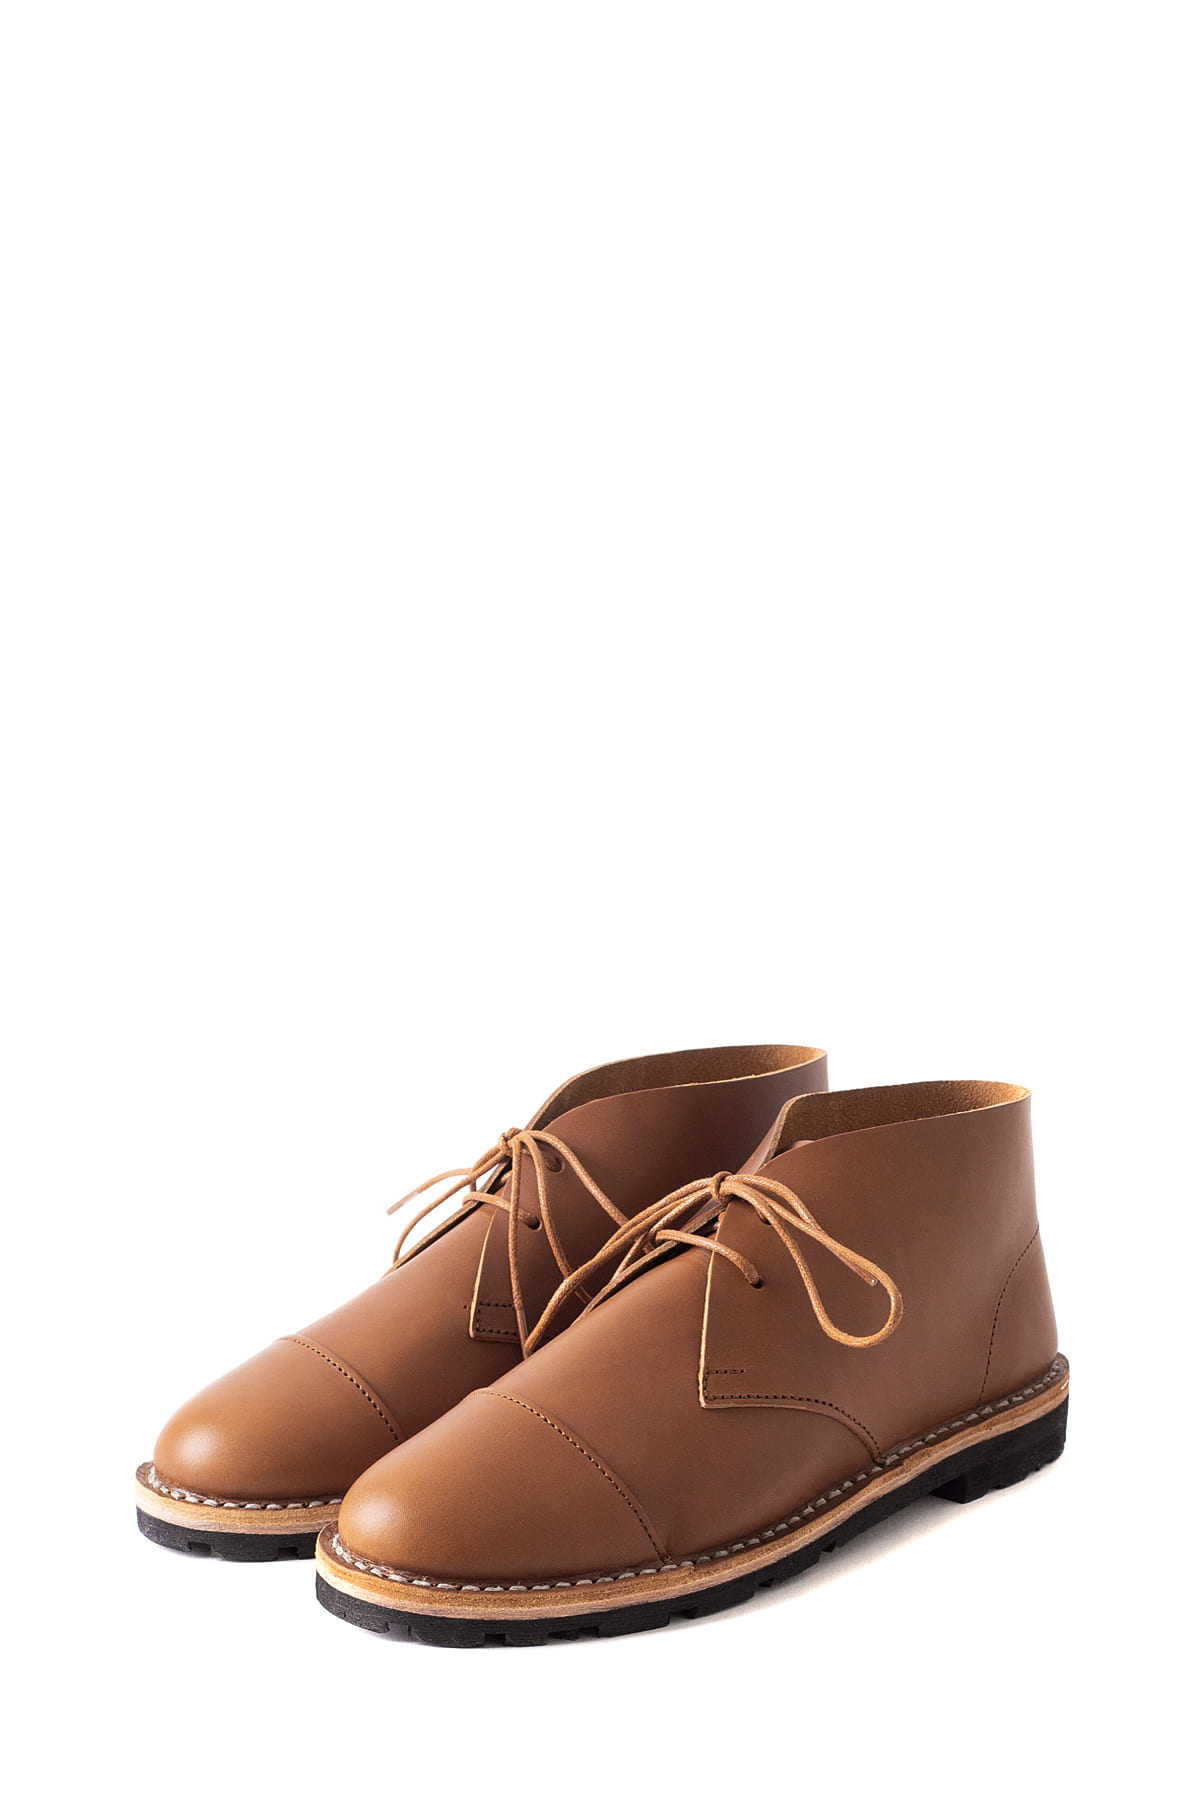 STEVE MONO : Artisanal Short Boot 10/10 (Brown)